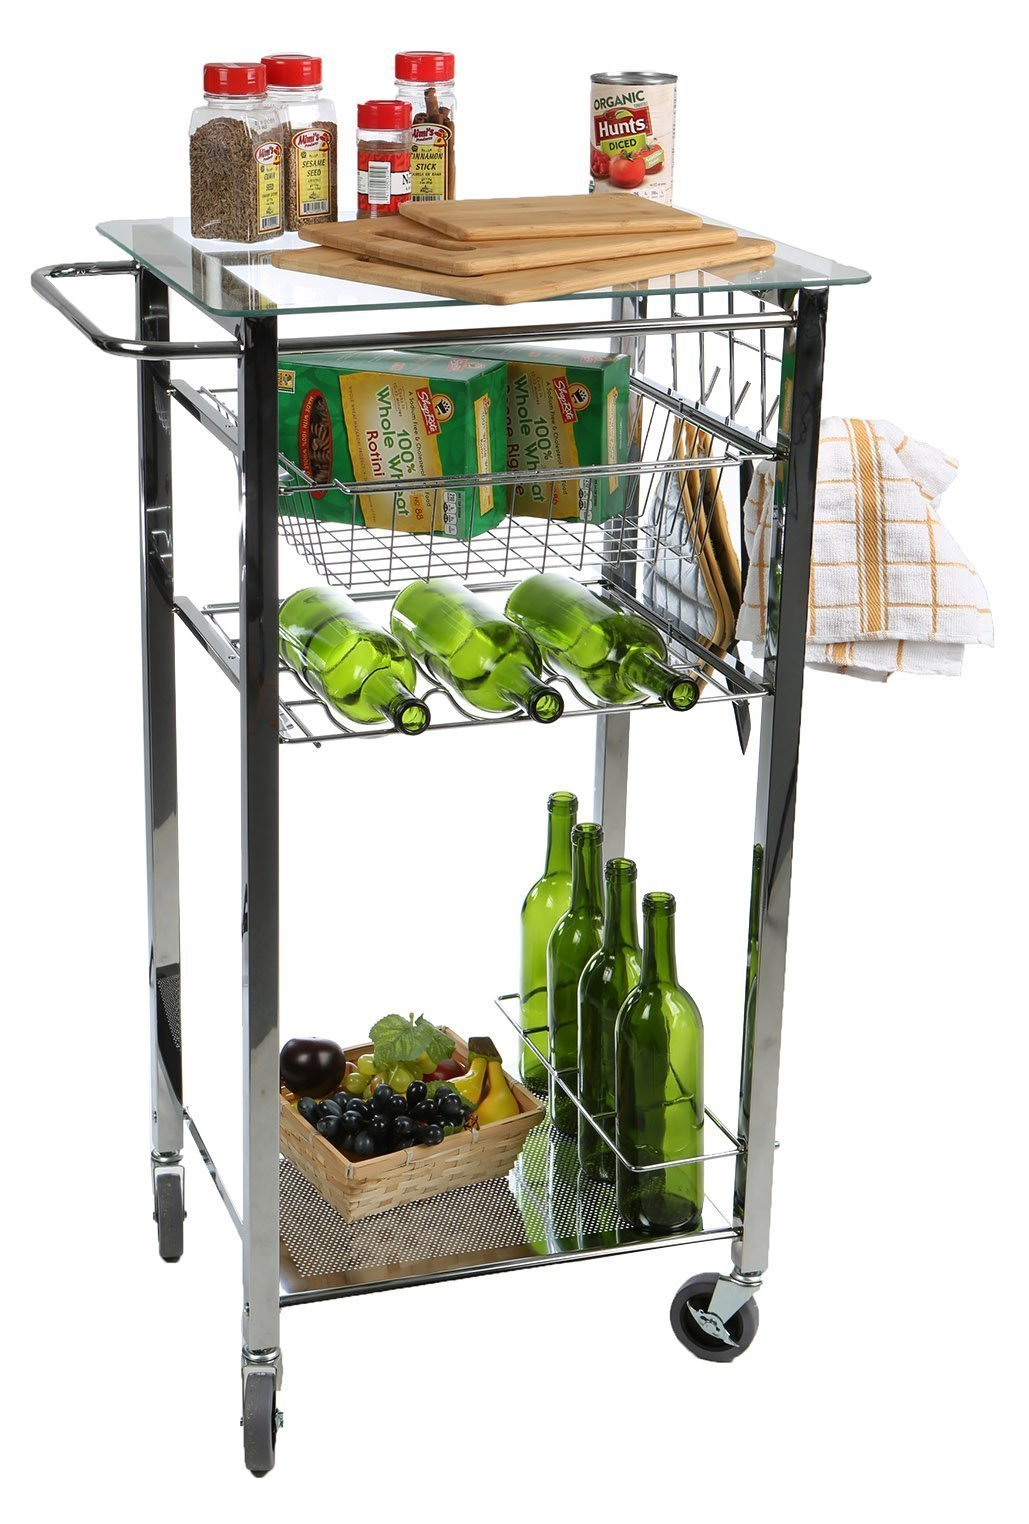 On amazon mind reader glass top mobile kitchen cart with wine bottle holder wine rack towel holder perfect kitchen island for cooking utensils kitchen appliances and food storage silver